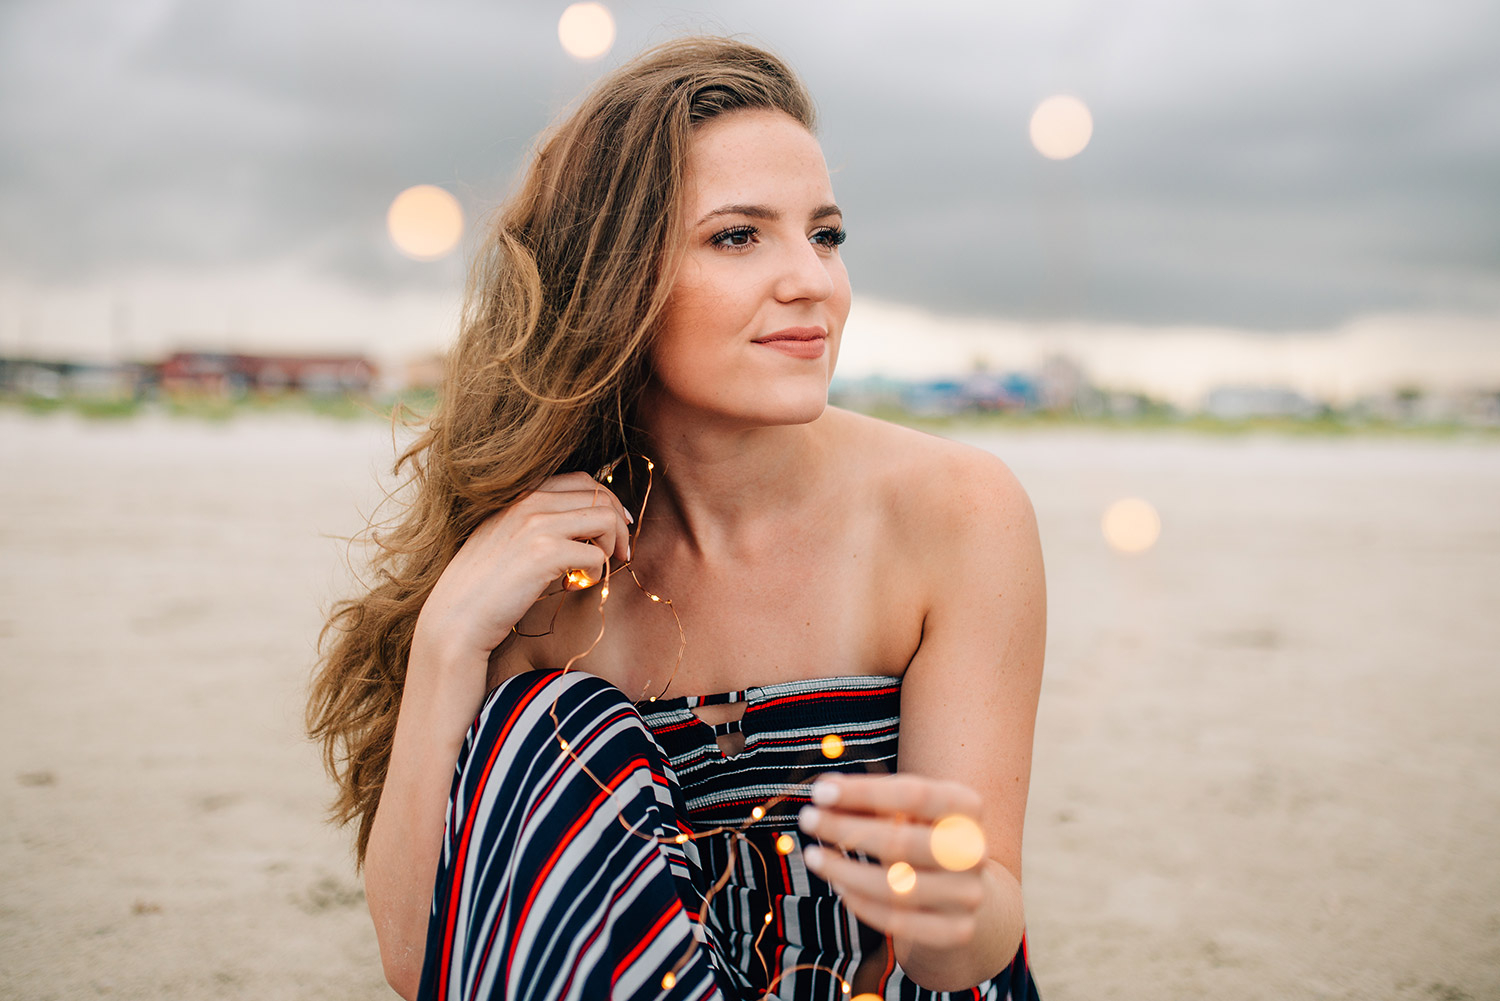 bokeh effect in a picture of a girl on the beach